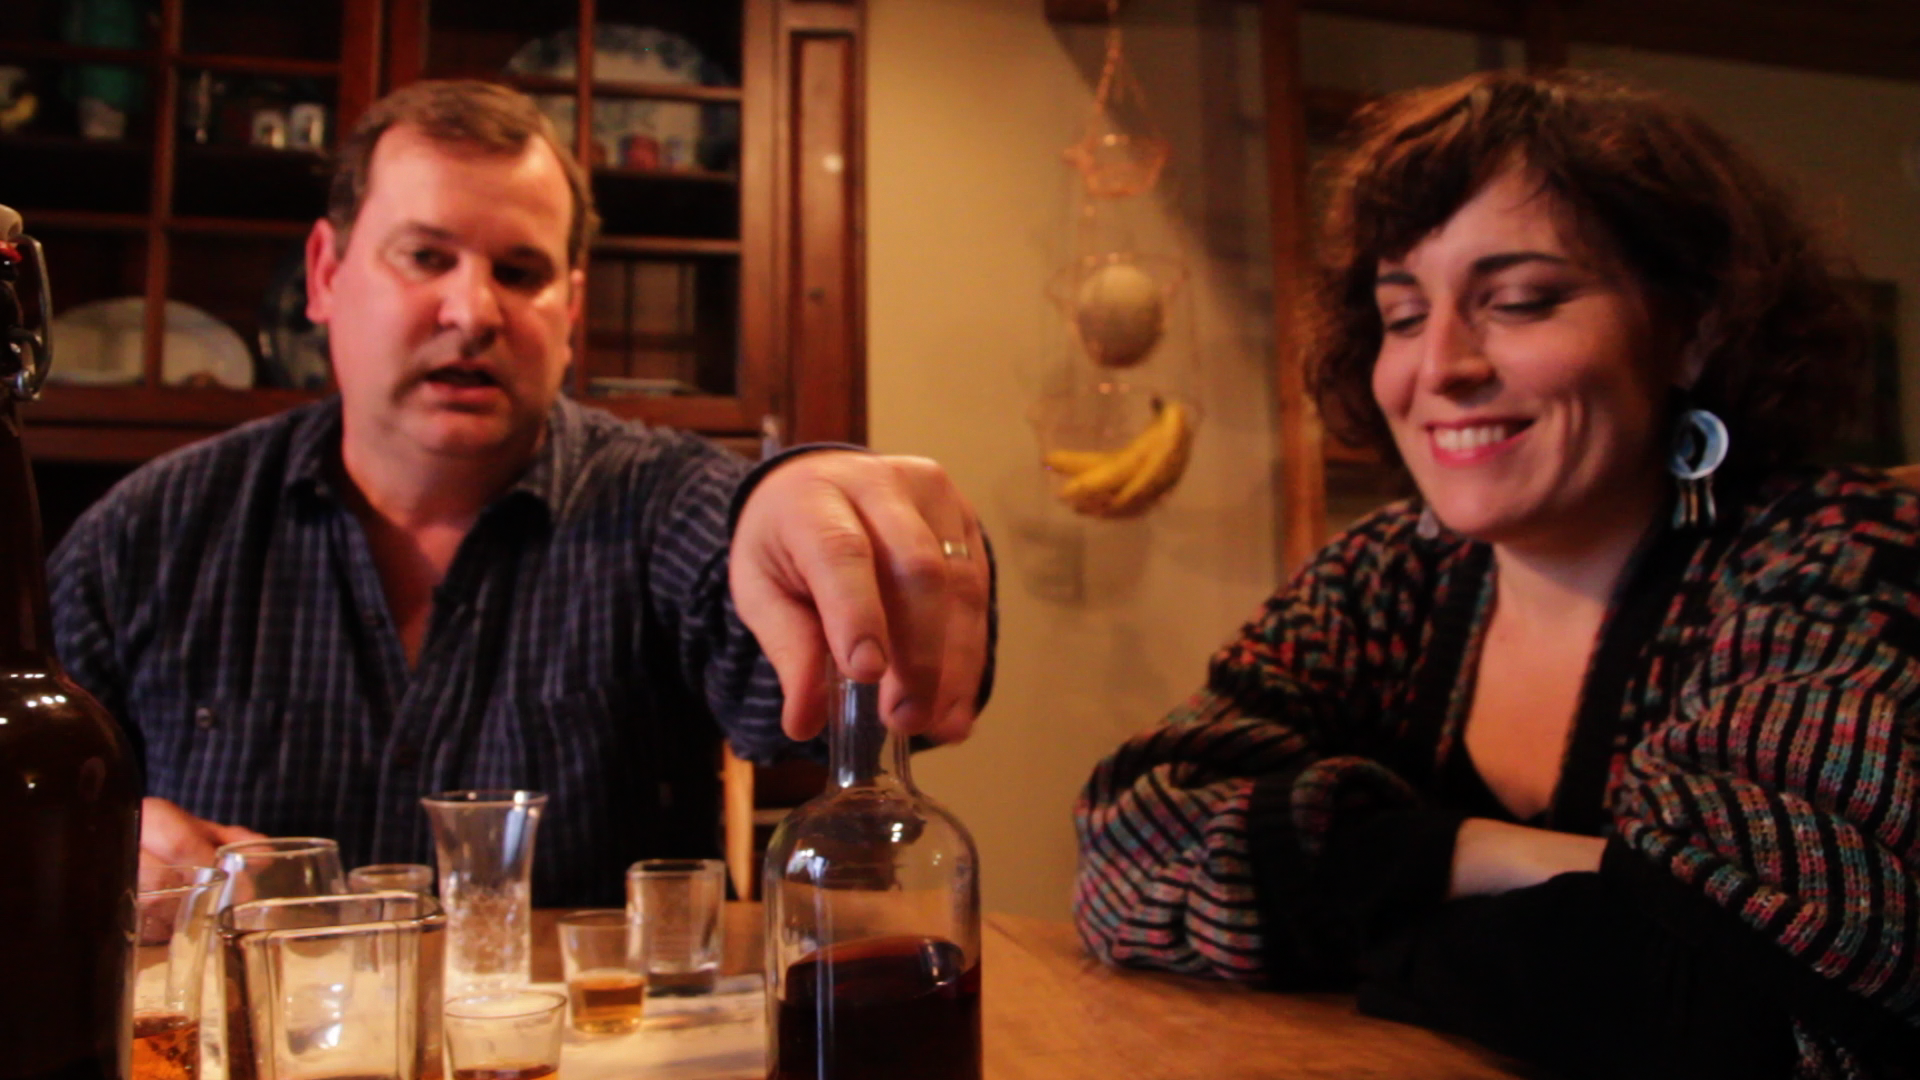 Andrea Maio, director of Back To Your Senses with Mark Moseler who has put his livelihood on the line to start a micro-distillery in N. Michigan